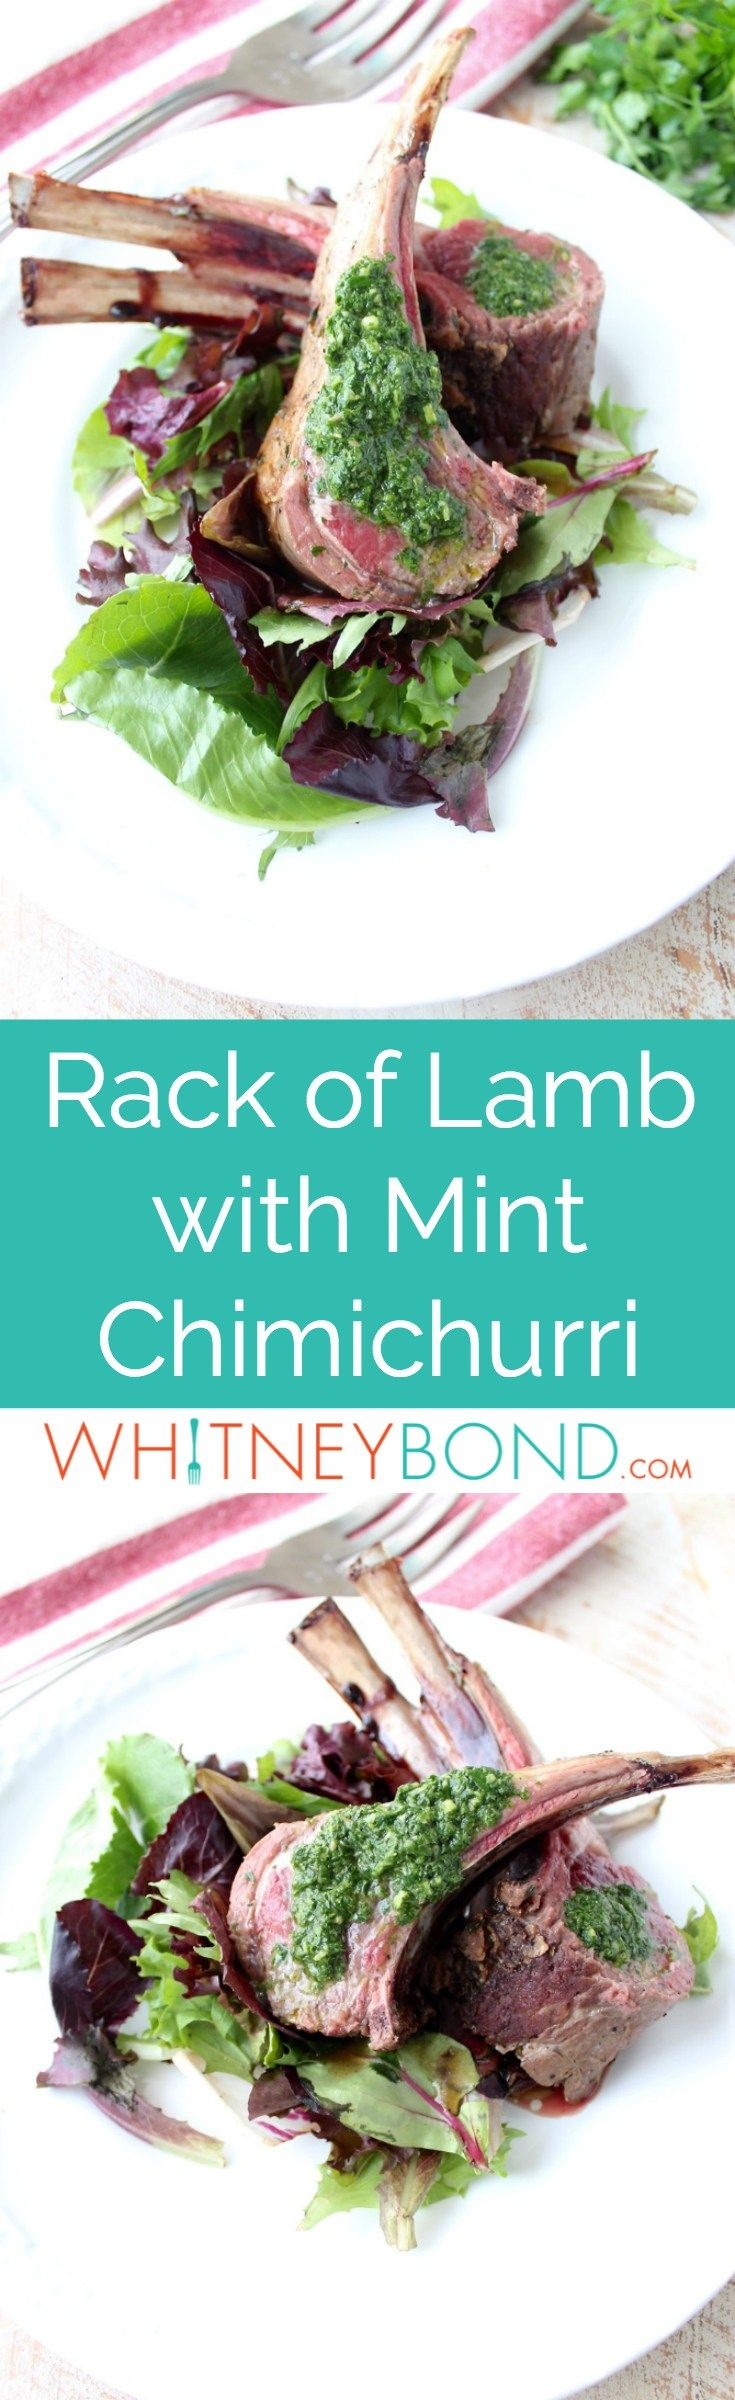 Rack of lamb is rubbed with herb butter, then roasted and topped with a mint chimichurri sauce in this elegant dinner recipe! #lamb #recipes #glutenfree